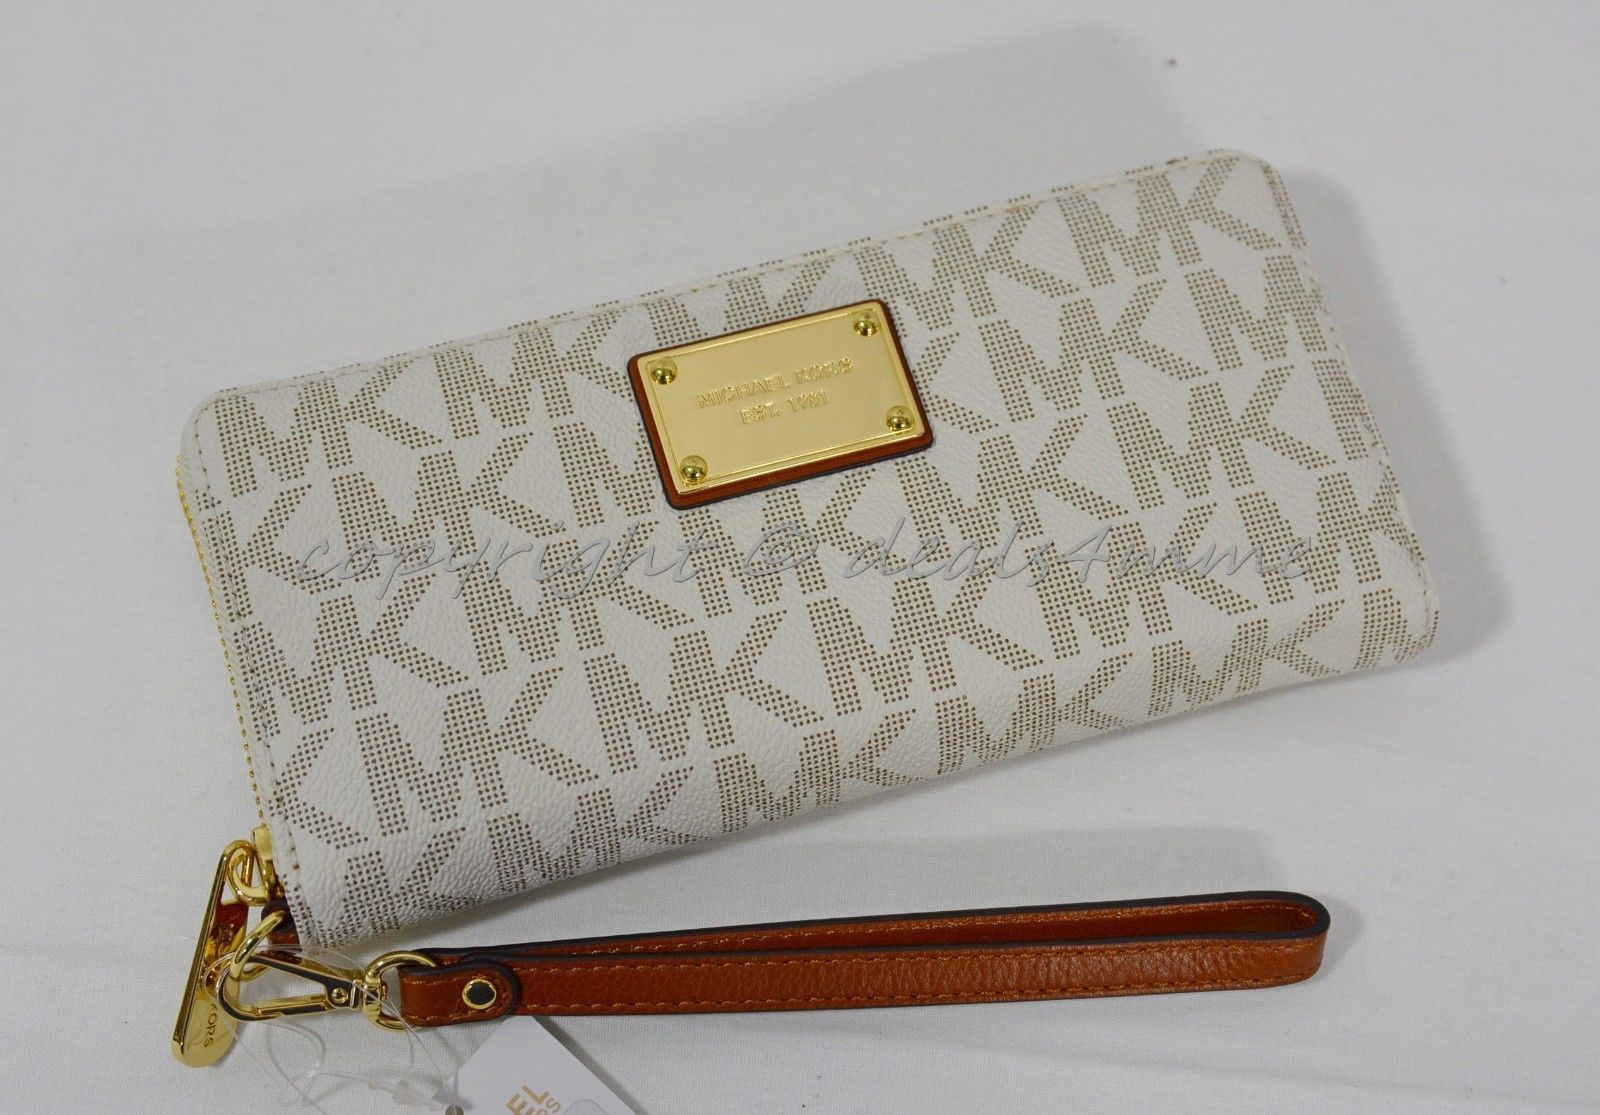 a0f7241c30d6 NWT Michael Kors Signature Jet Set Travel and 50 similar items. S l1600